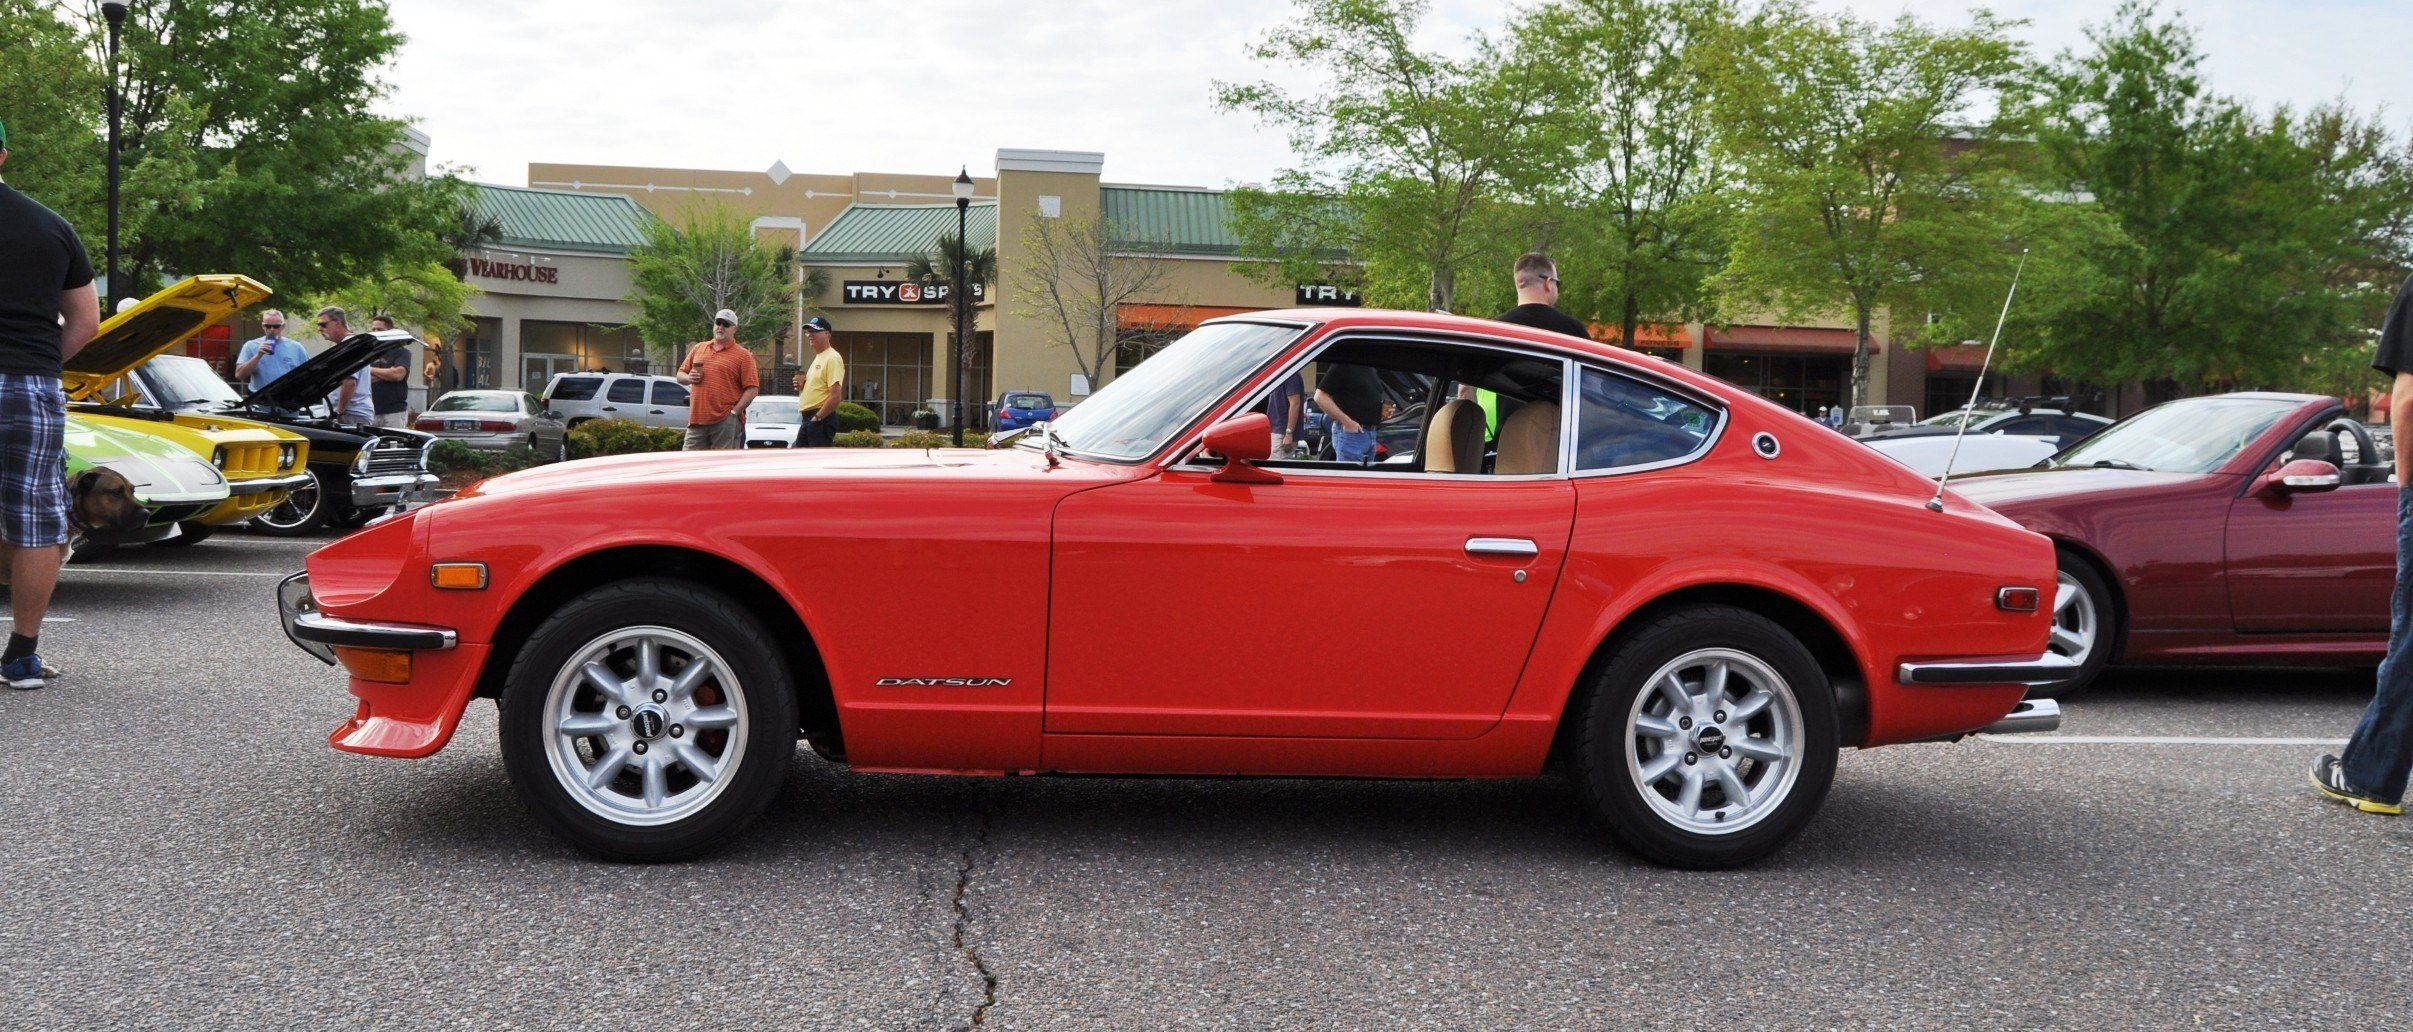 New Classic Sports Cars Datsun 240Z At Cars Coffee On This Month